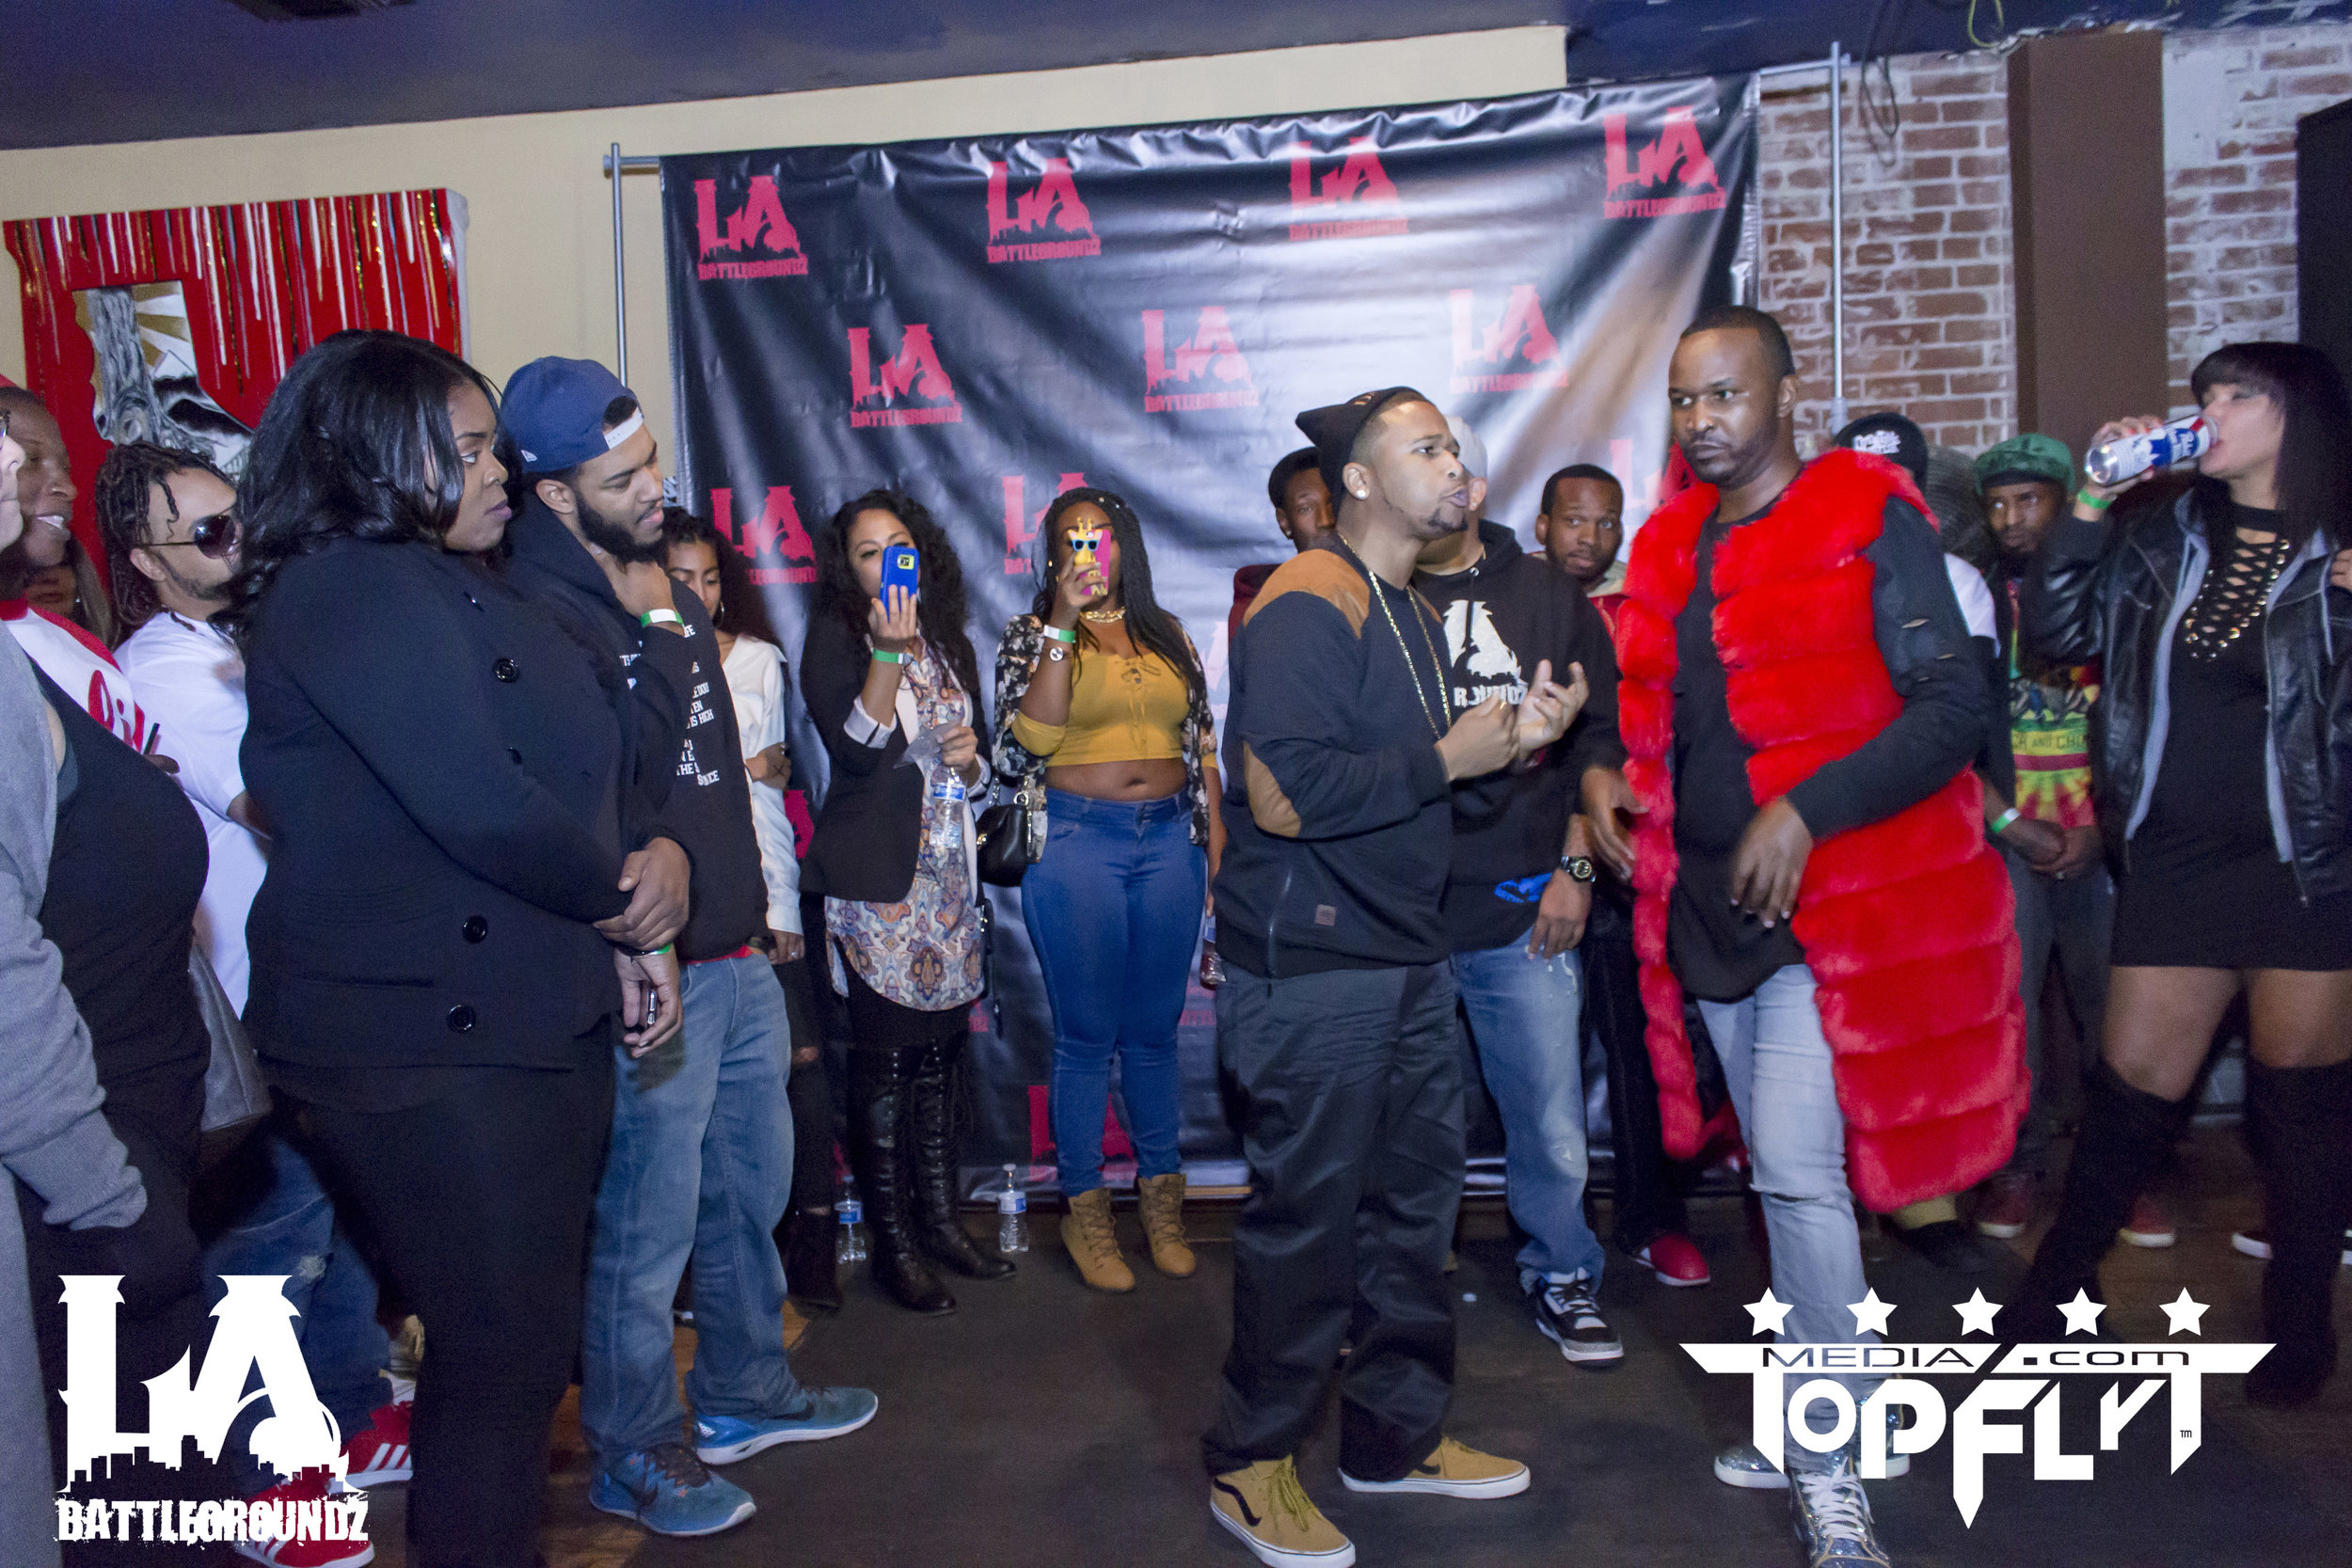 LA Battlegroundz - Decembarfest - The Christening_61.jpg